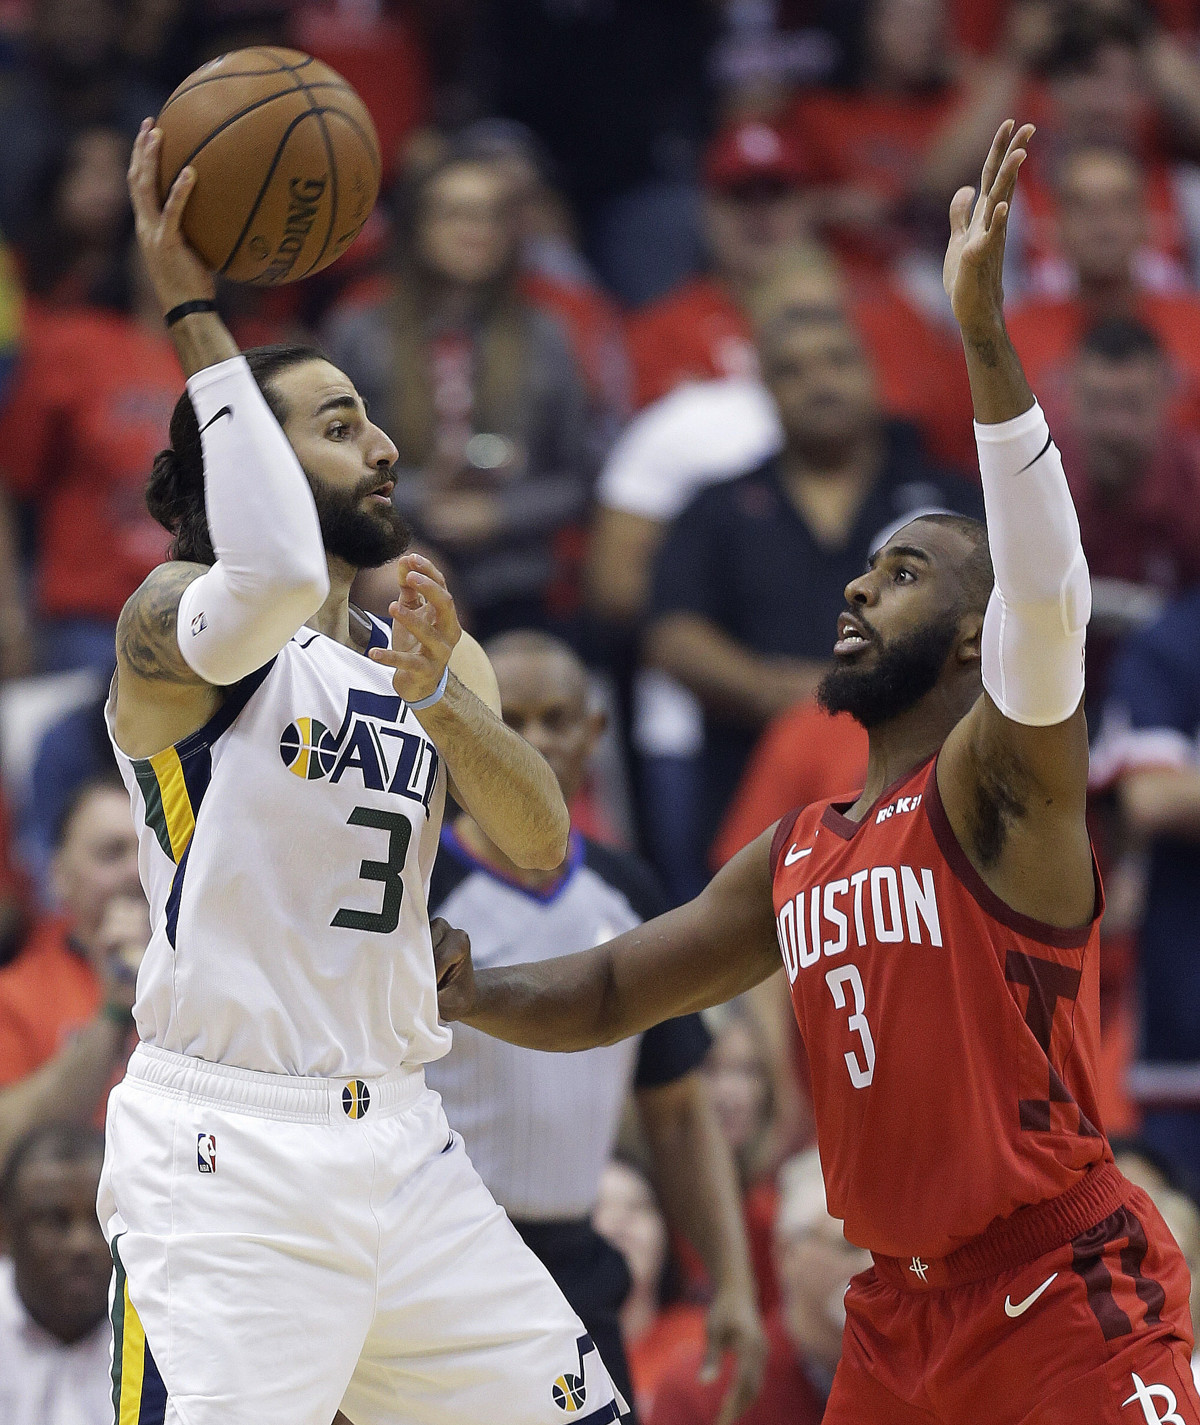 dcaac344d35d Utah Jazz s defense (or lack thereof) on James Harden has Twitter buzzing